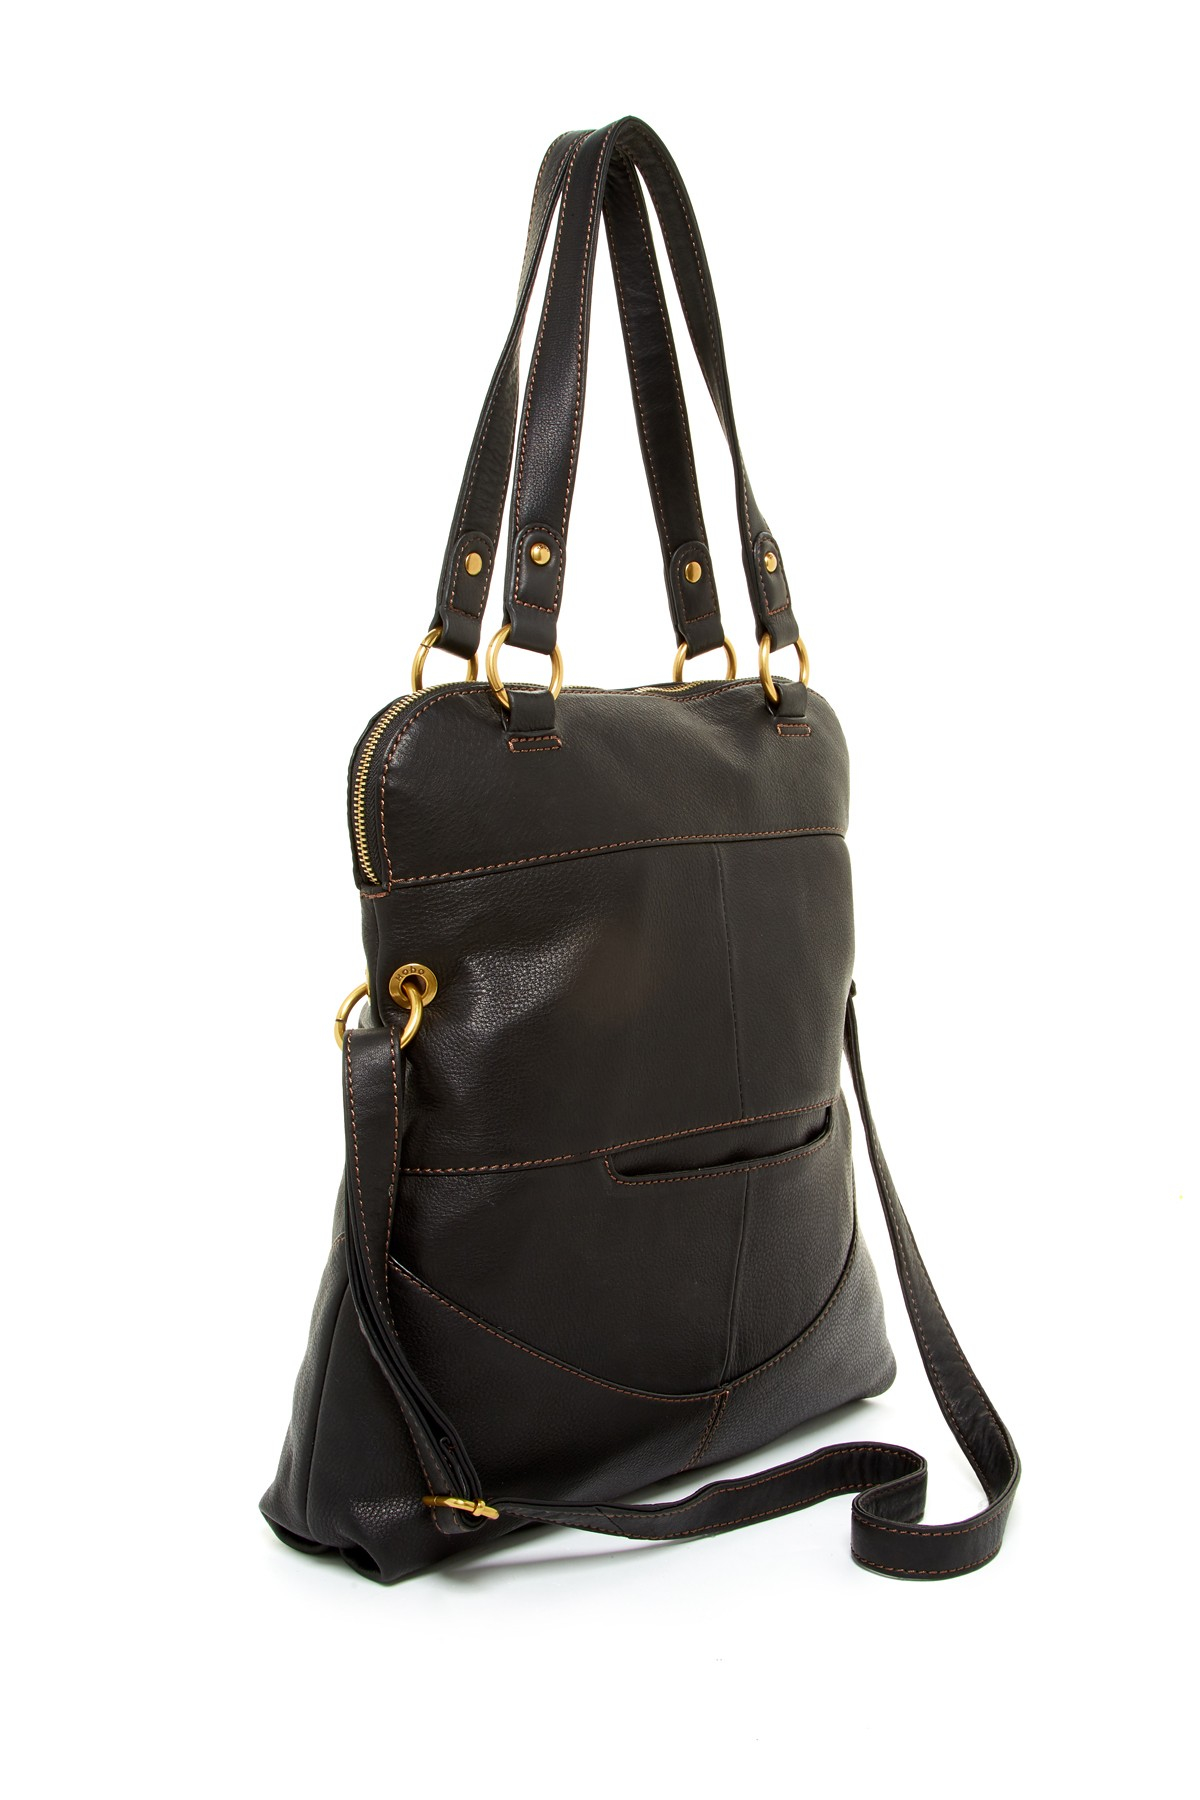 Lyst Hobo Ridge Leather Shoulder Bag In Black